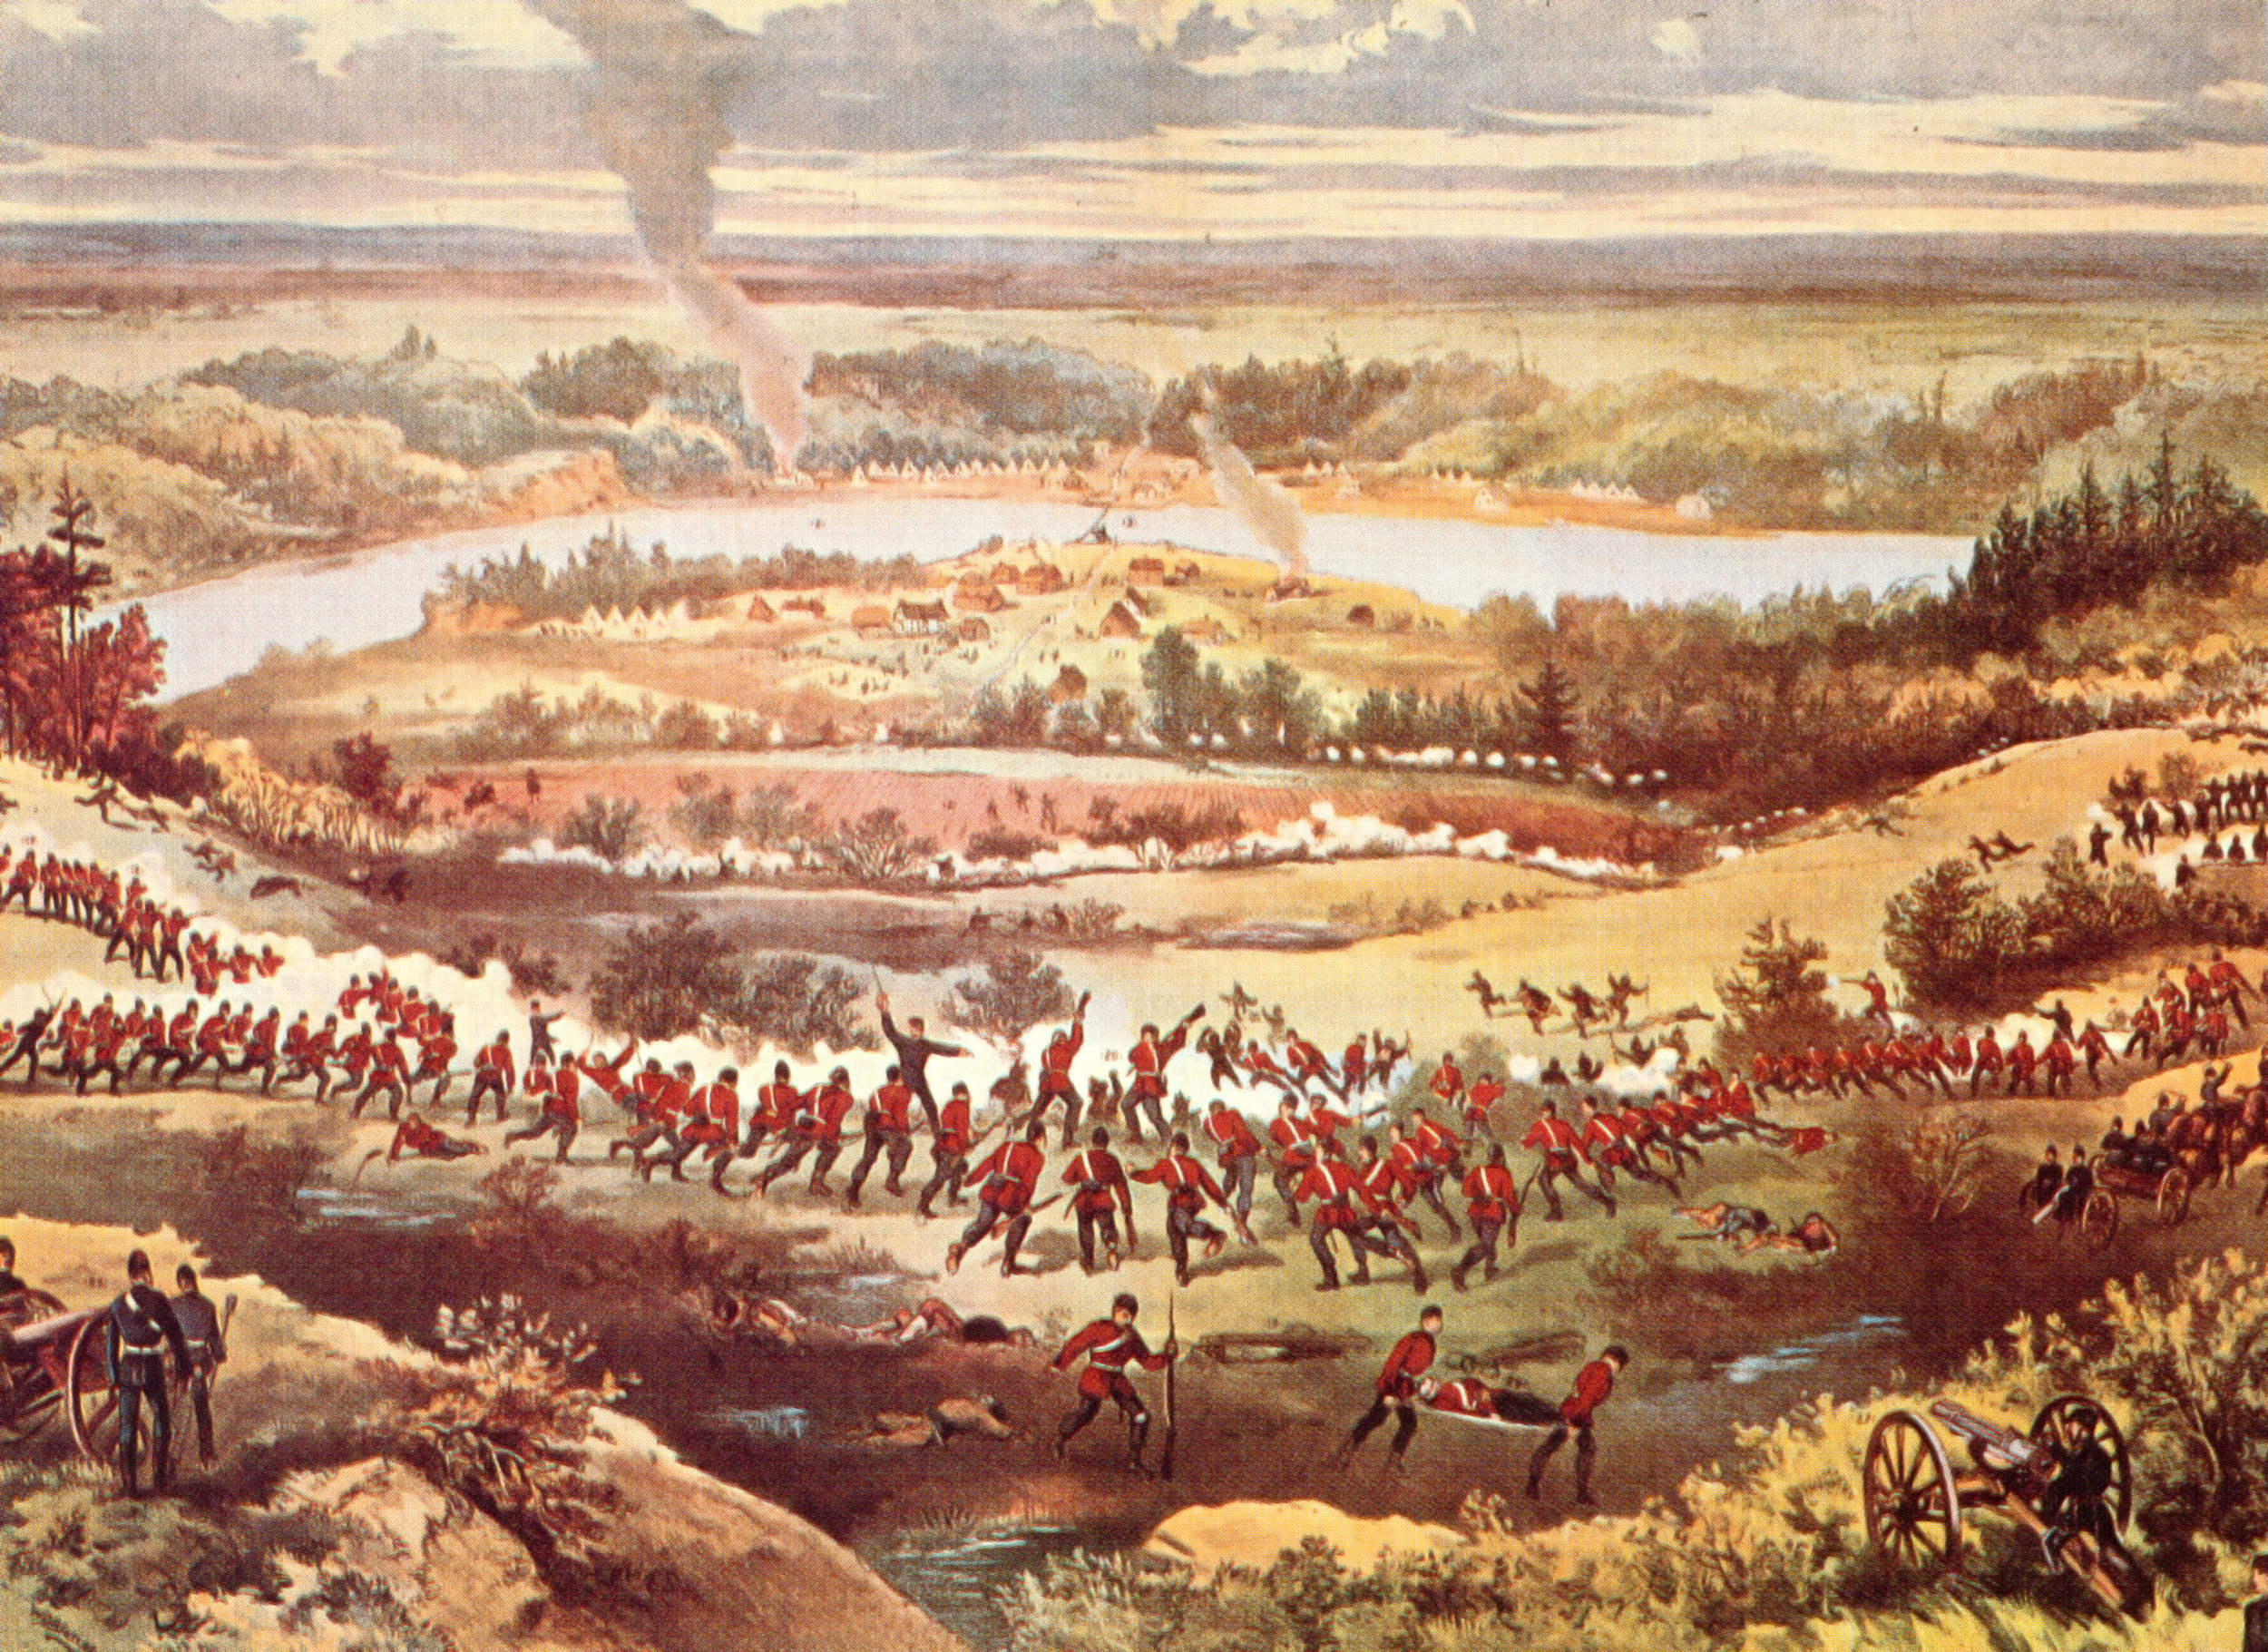 "The growing discontentment of the Indigenous peoples of Saskatchewan led to the North-West Rebellion, which ended with the Siege of Batoche. This three-day battle saw fewer than 300 Métis and First Nations people, led by Louis Riel and Gabriel Dumont, take on the 800-strong North West Field Force, commanded by MGen Frederick Middleton. On May 12, 1885, frustrated by two days of indecisive skirmishing, the militia battalions stormed the Métis position without orders, bringing the rebellion to a close. (""battle of batoche"" based on sketches by sergeant grundy and others, toronto)"